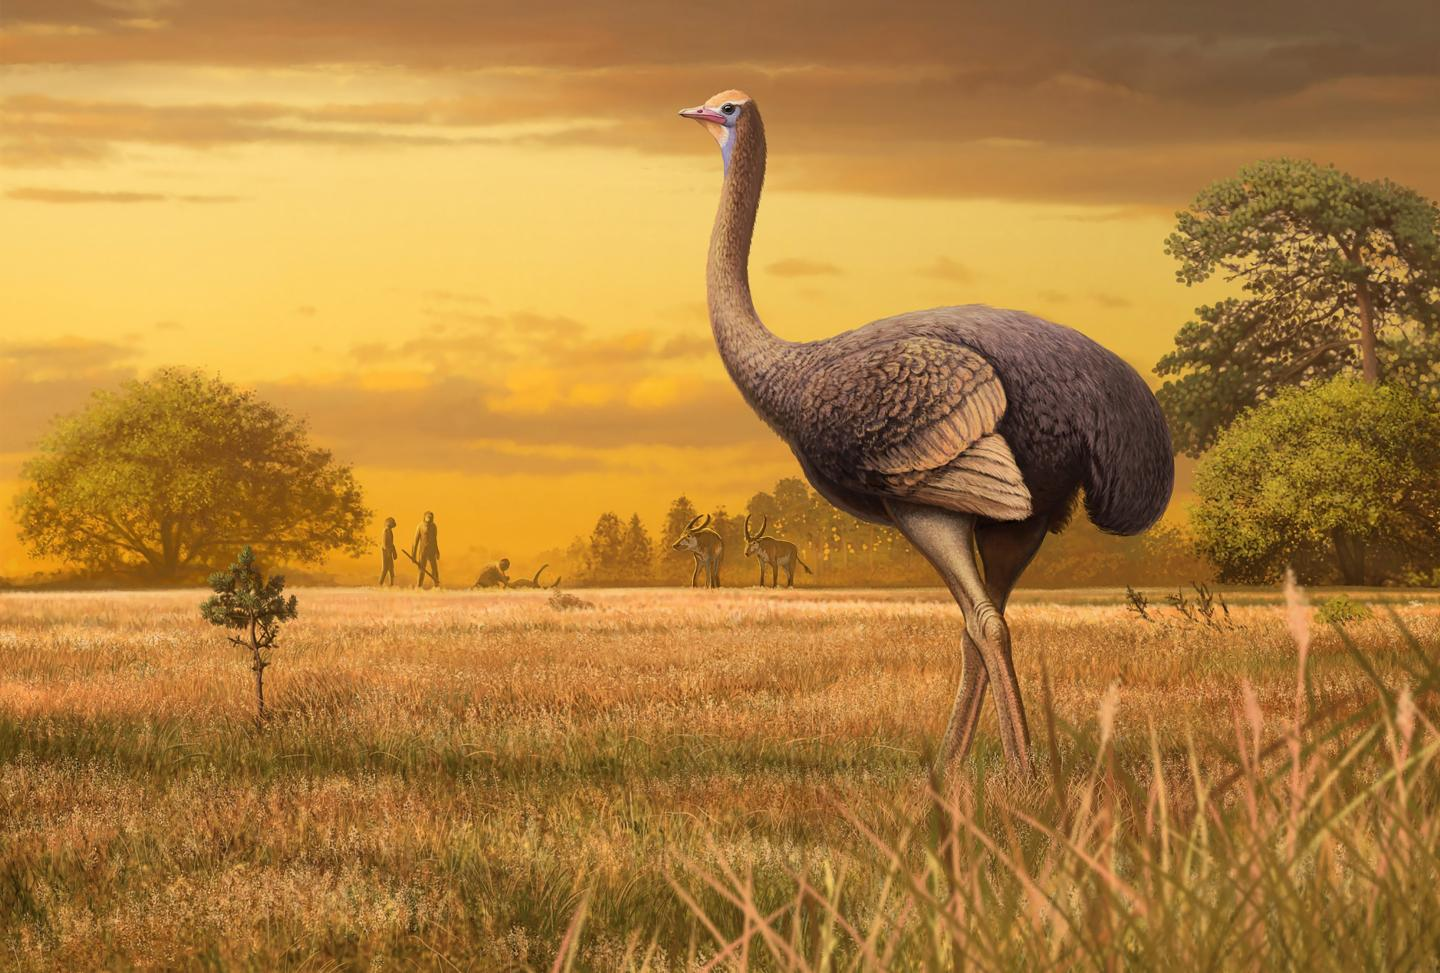 Prehistoric bird standing 11.5 ft tall and weighing half a ton found in Crimean cave